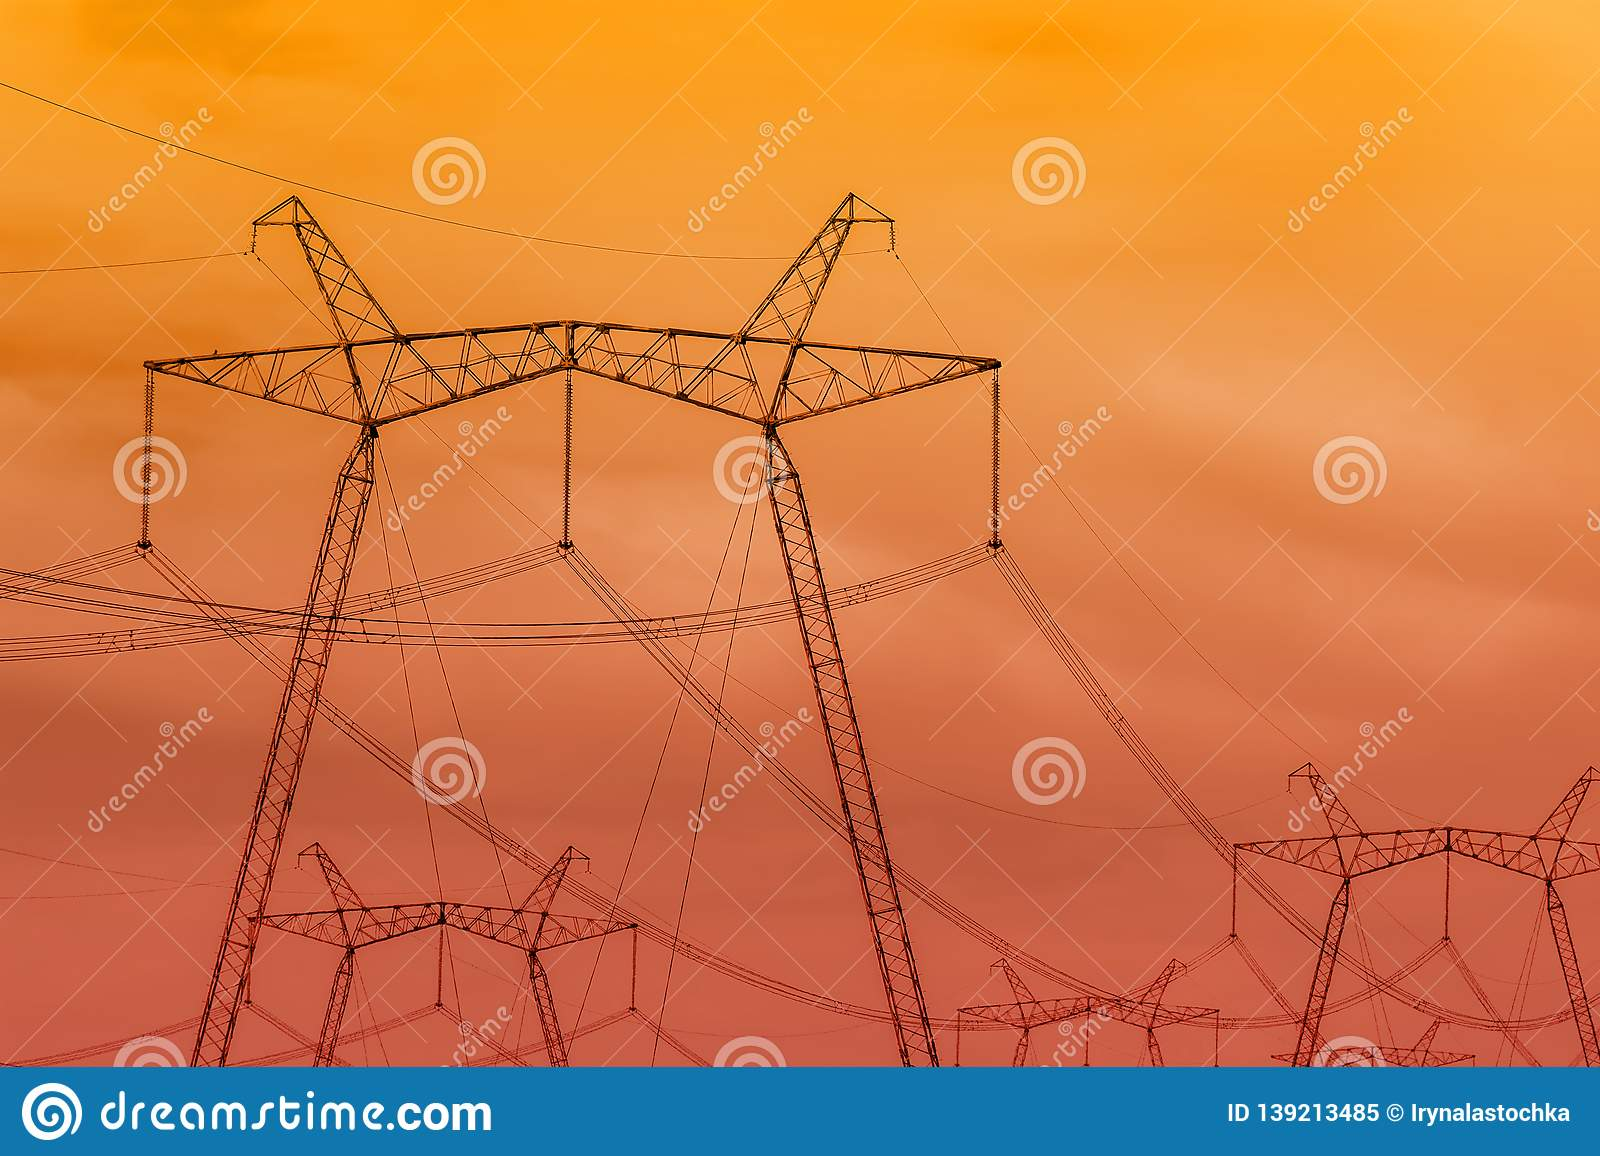 sky phone line wiring diagram high voltage power lines against the orange red sky stock image  high voltage power lines against the